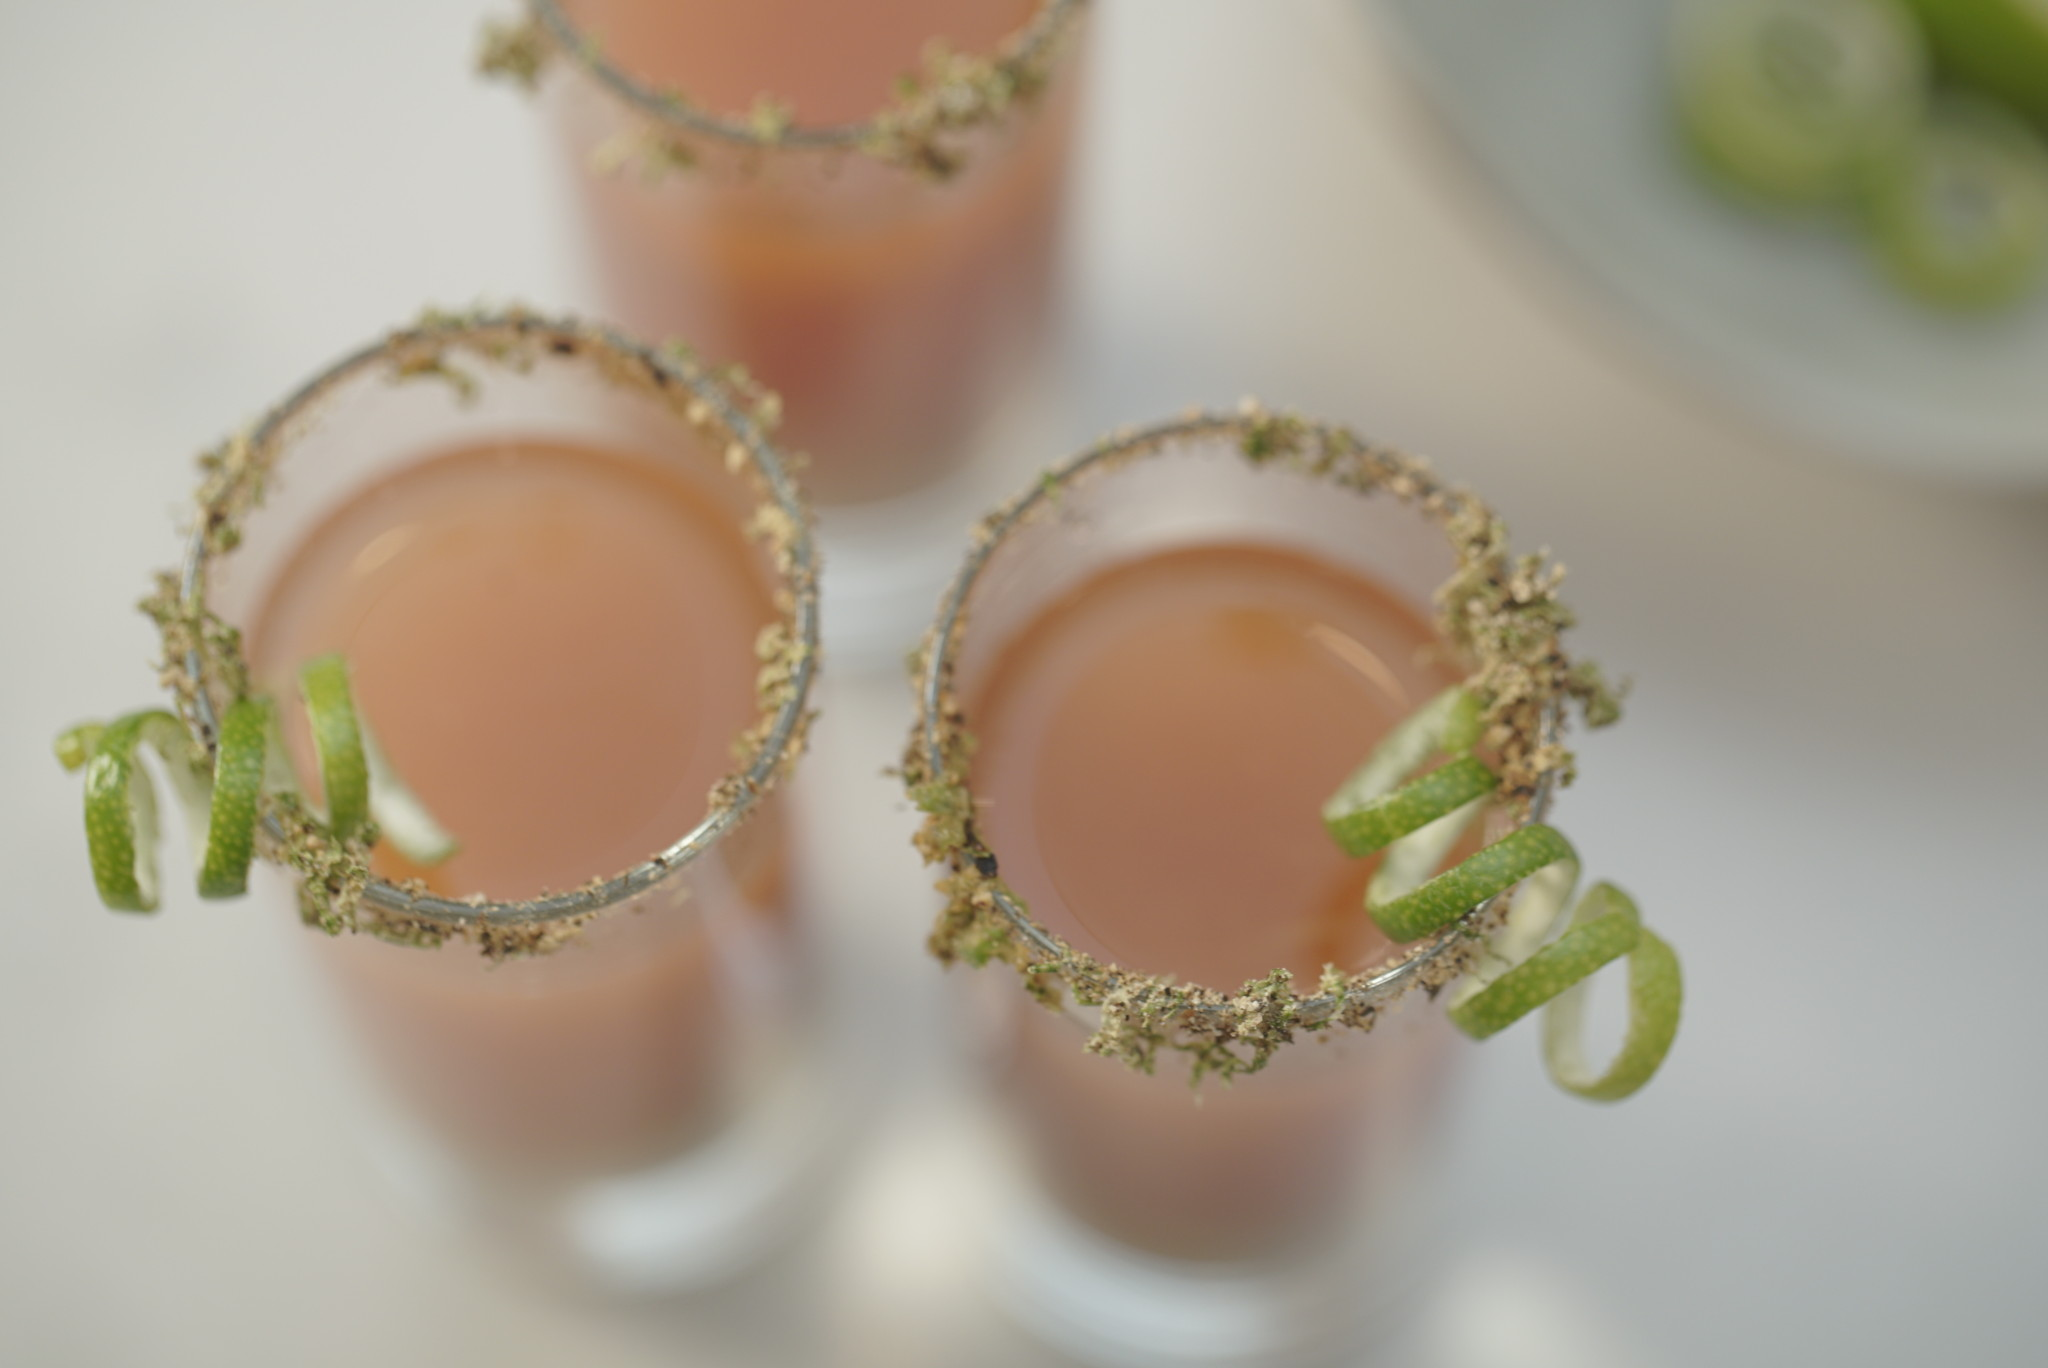 Bloody Rita Oyster Shooters